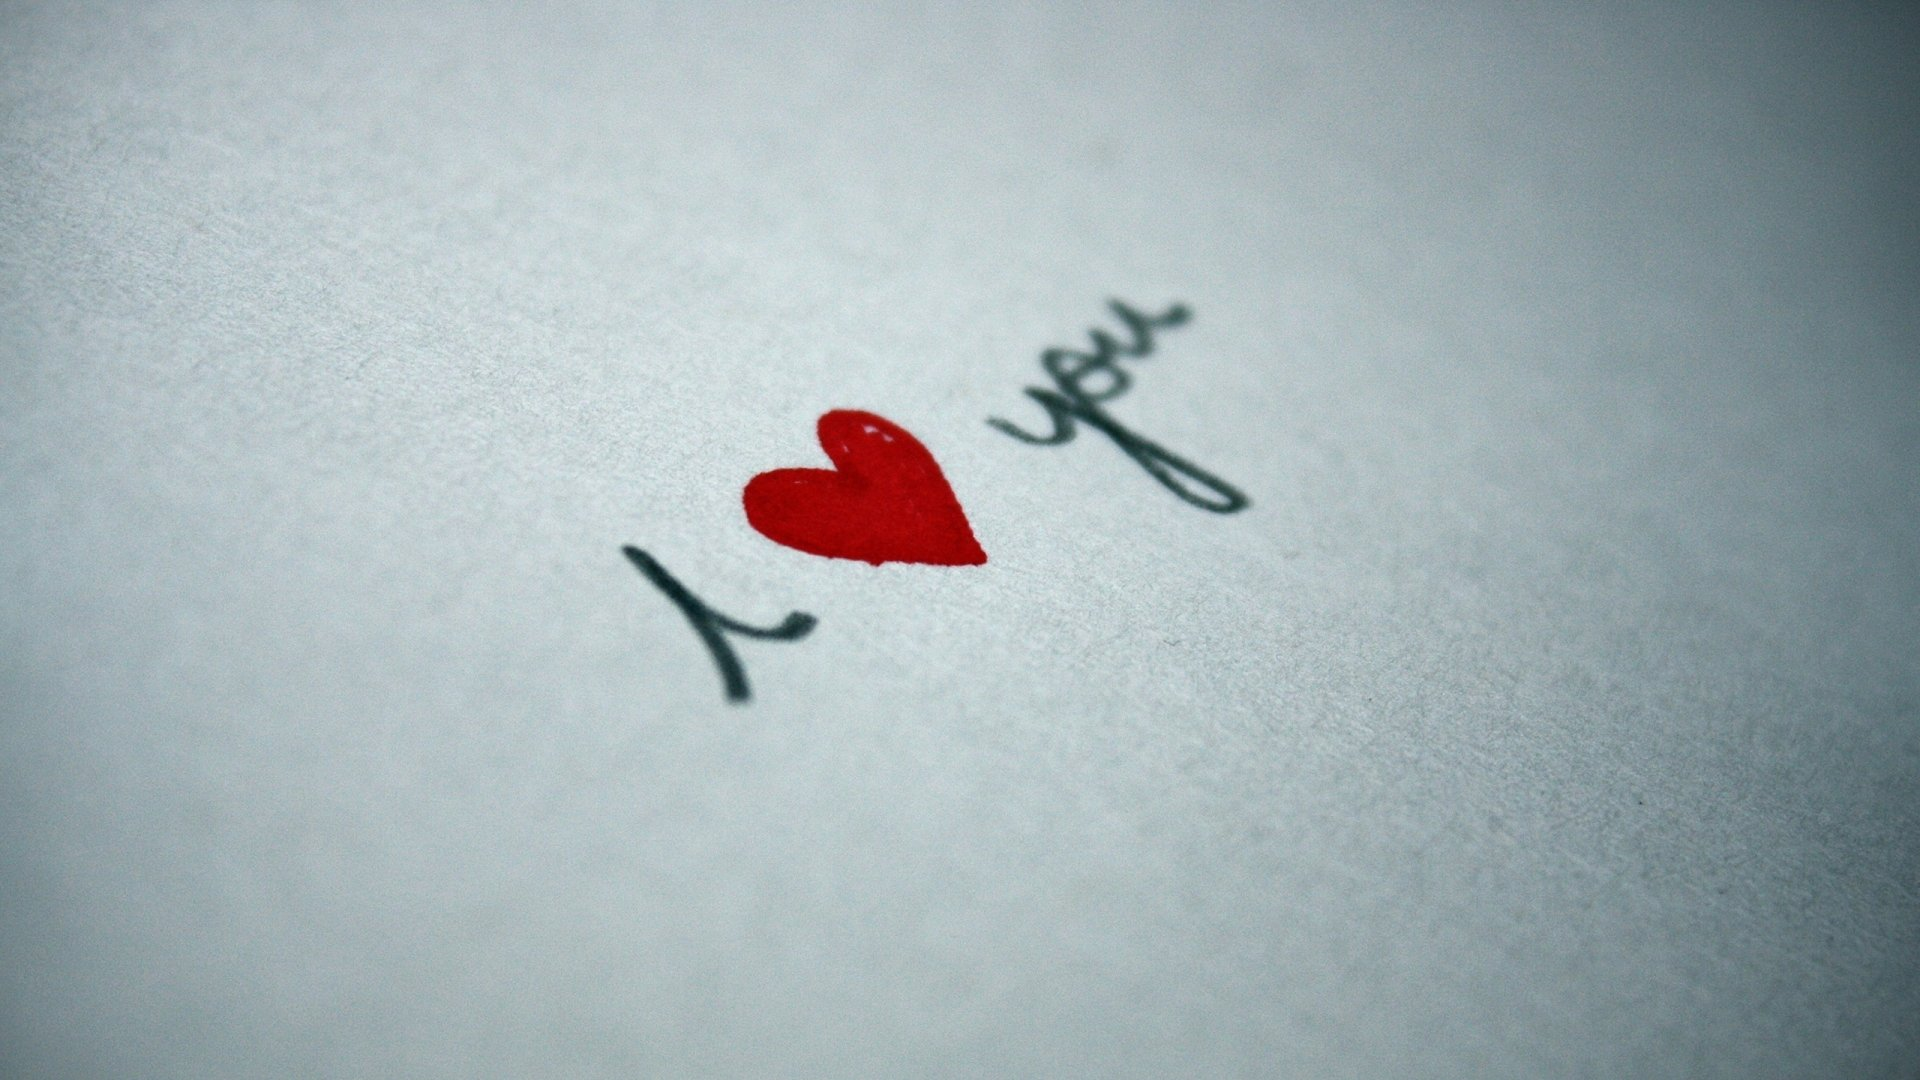 20 Cool Love Images Wallpapers HD